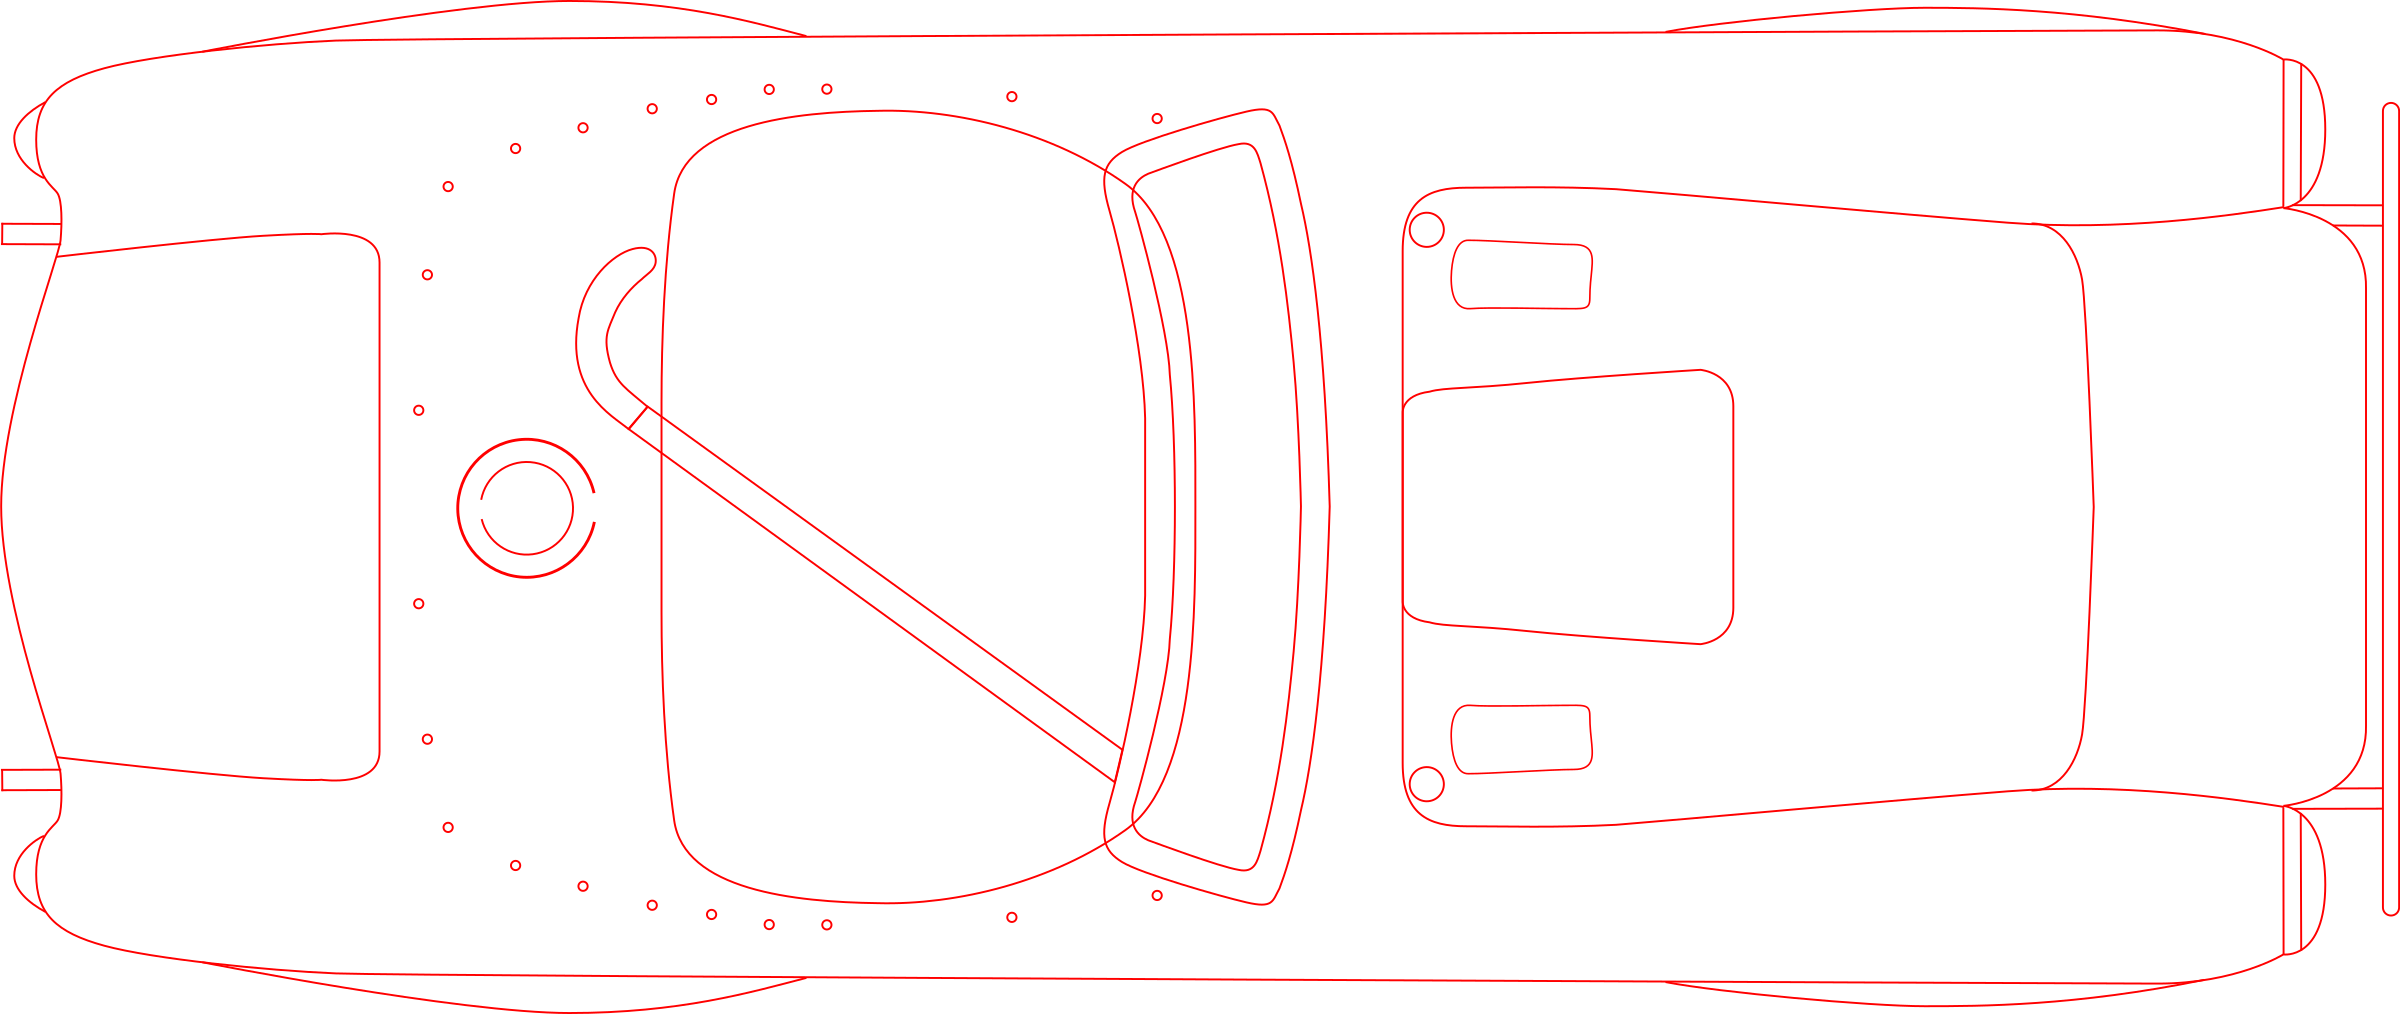 Shelby Cobra blueprint by Anonymous